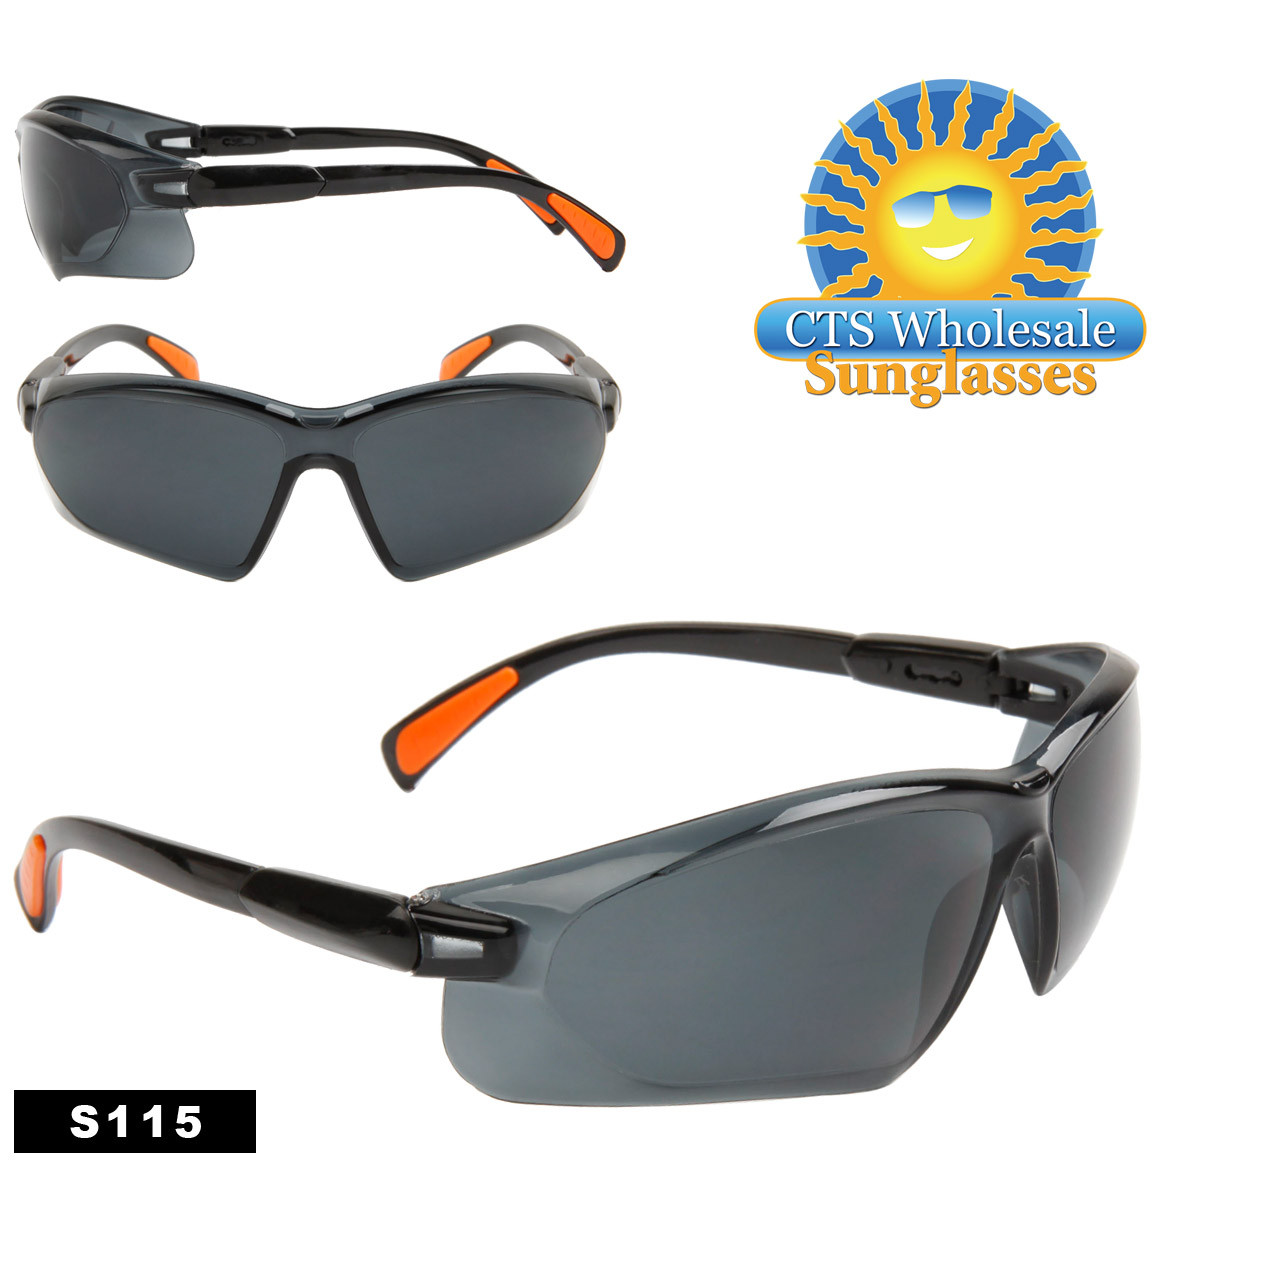 Tinted Lens Safety Glasses with Rubber Tip Adjustable Arms